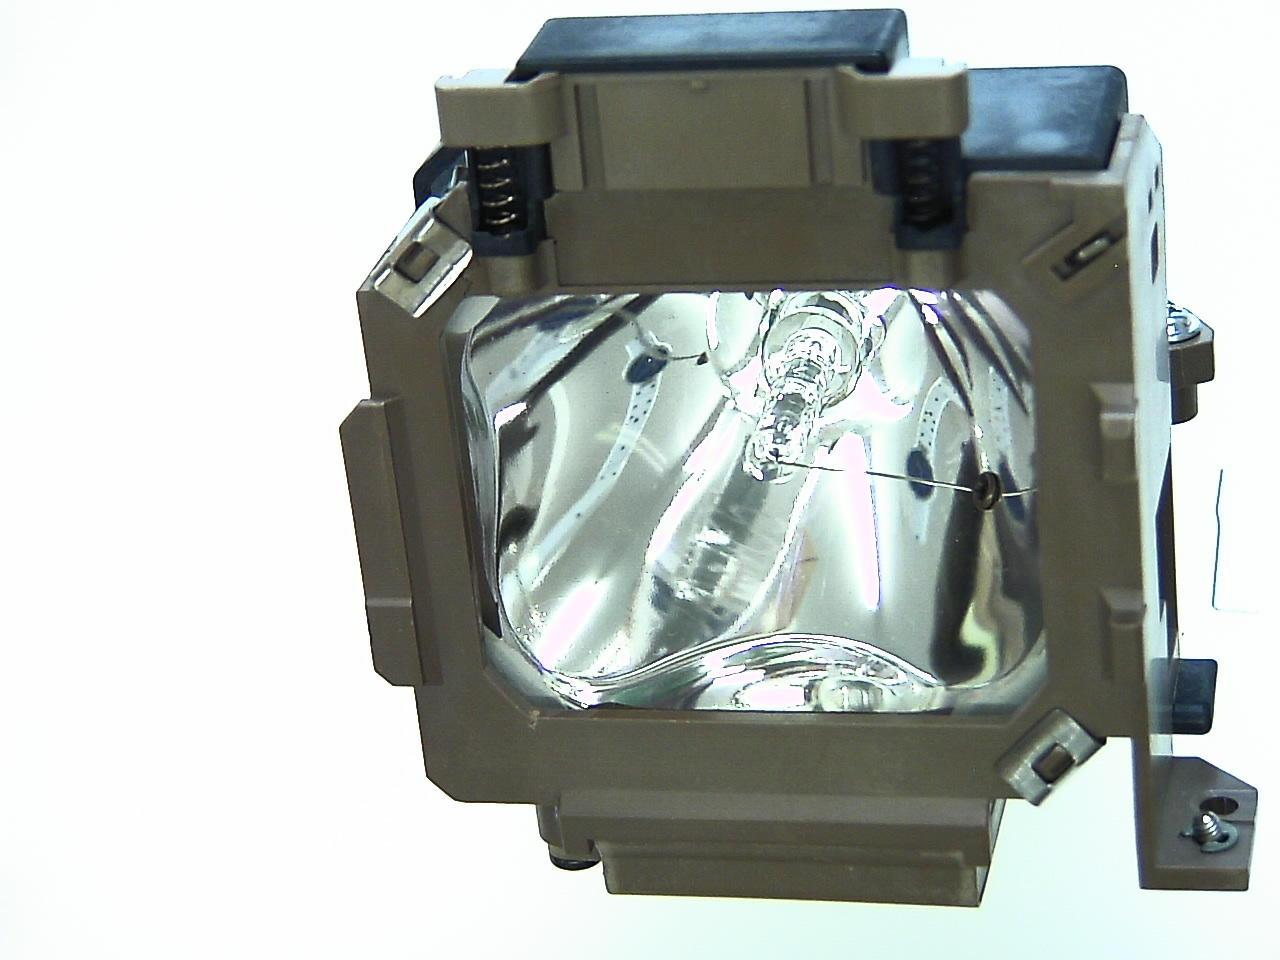 Compatible Projector lamp for EPSON ELPLP17/V13H010L17/EMP-TS10/MP-TW100/PowerLite TW100 replacement projector lamp with housing elplp23 v13h010l23 for epson emp 8300 emp 8300nl powerlite 8300i powerlite 8300nl